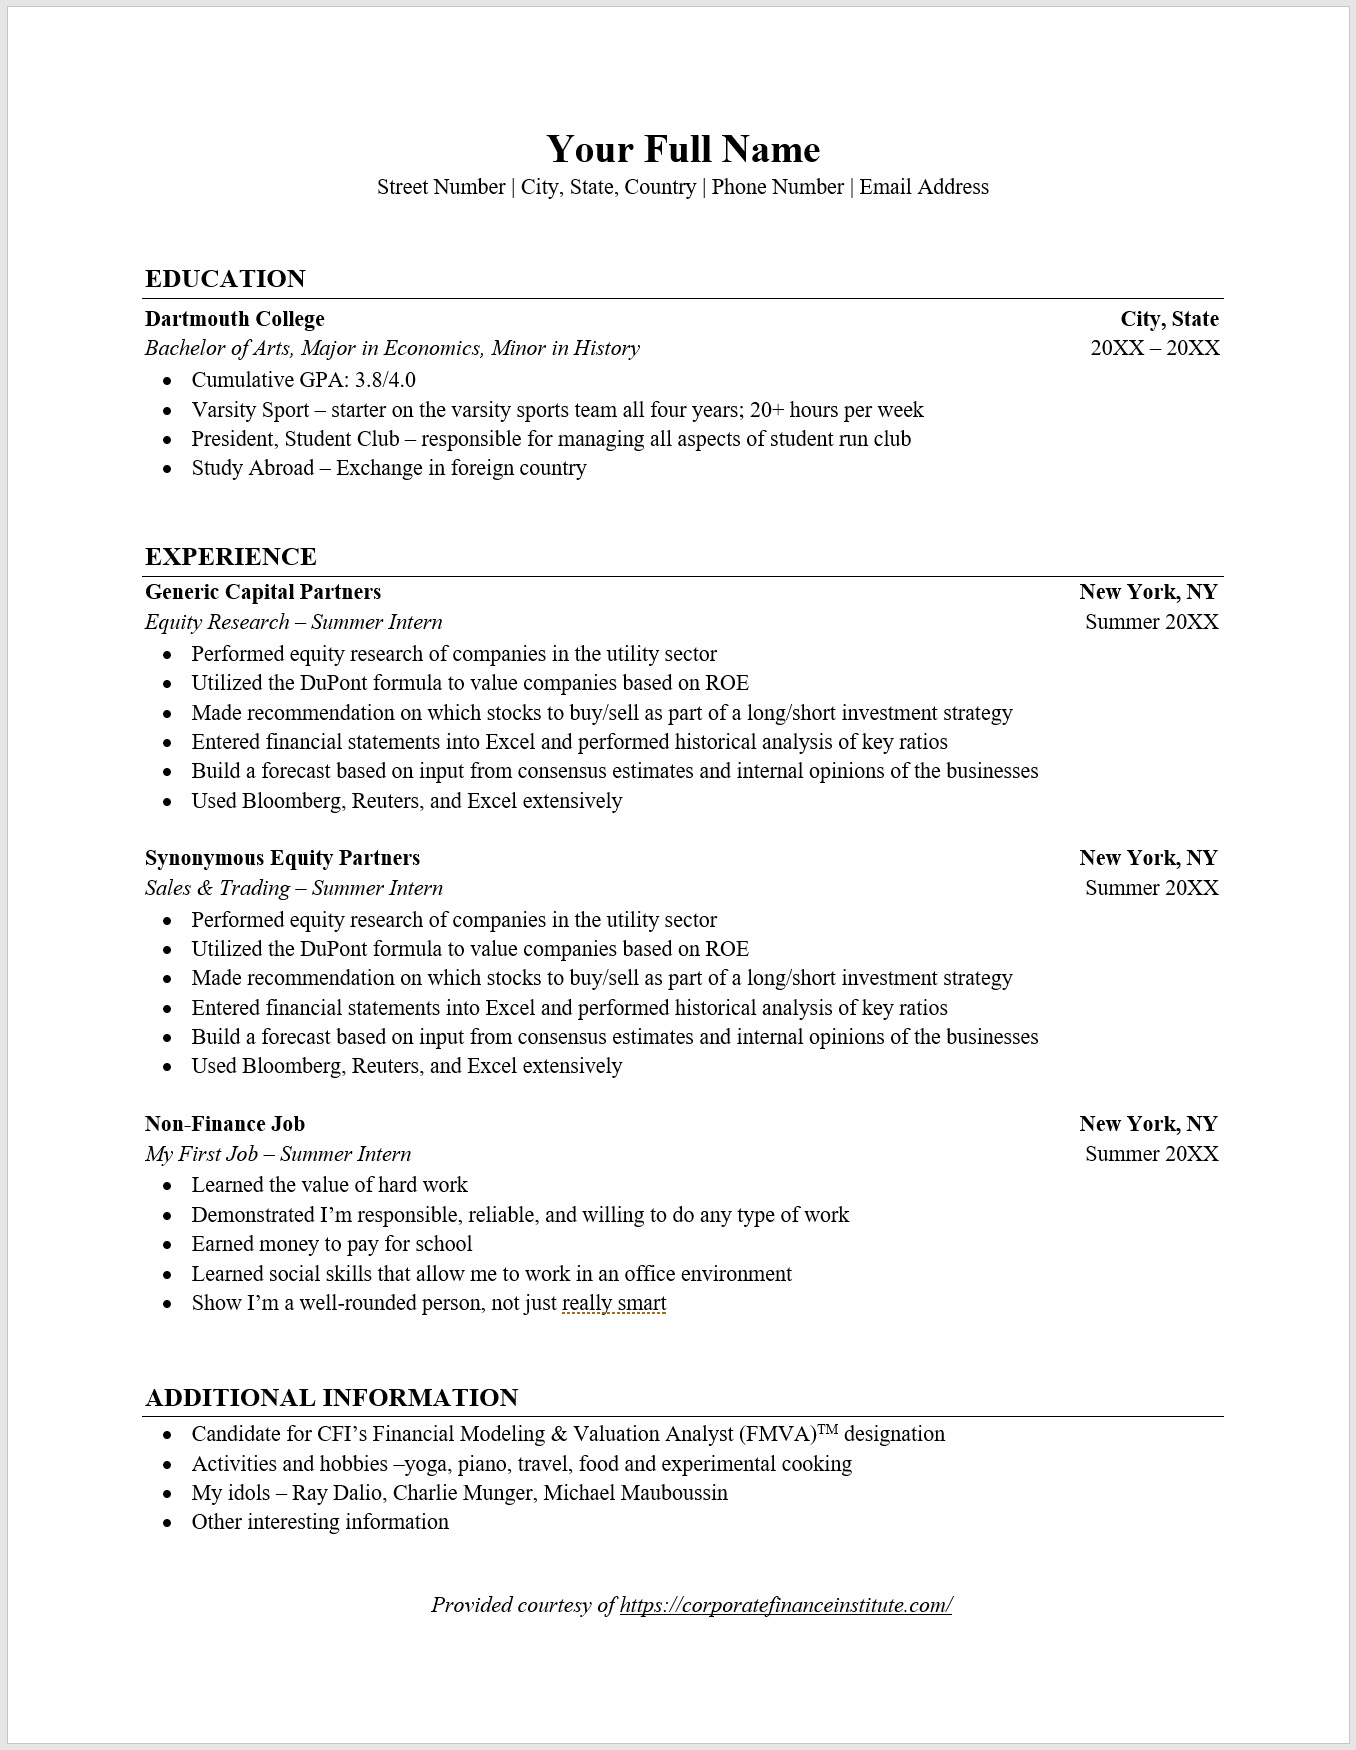 Free Resume Templates Overview Main Types How To Choose